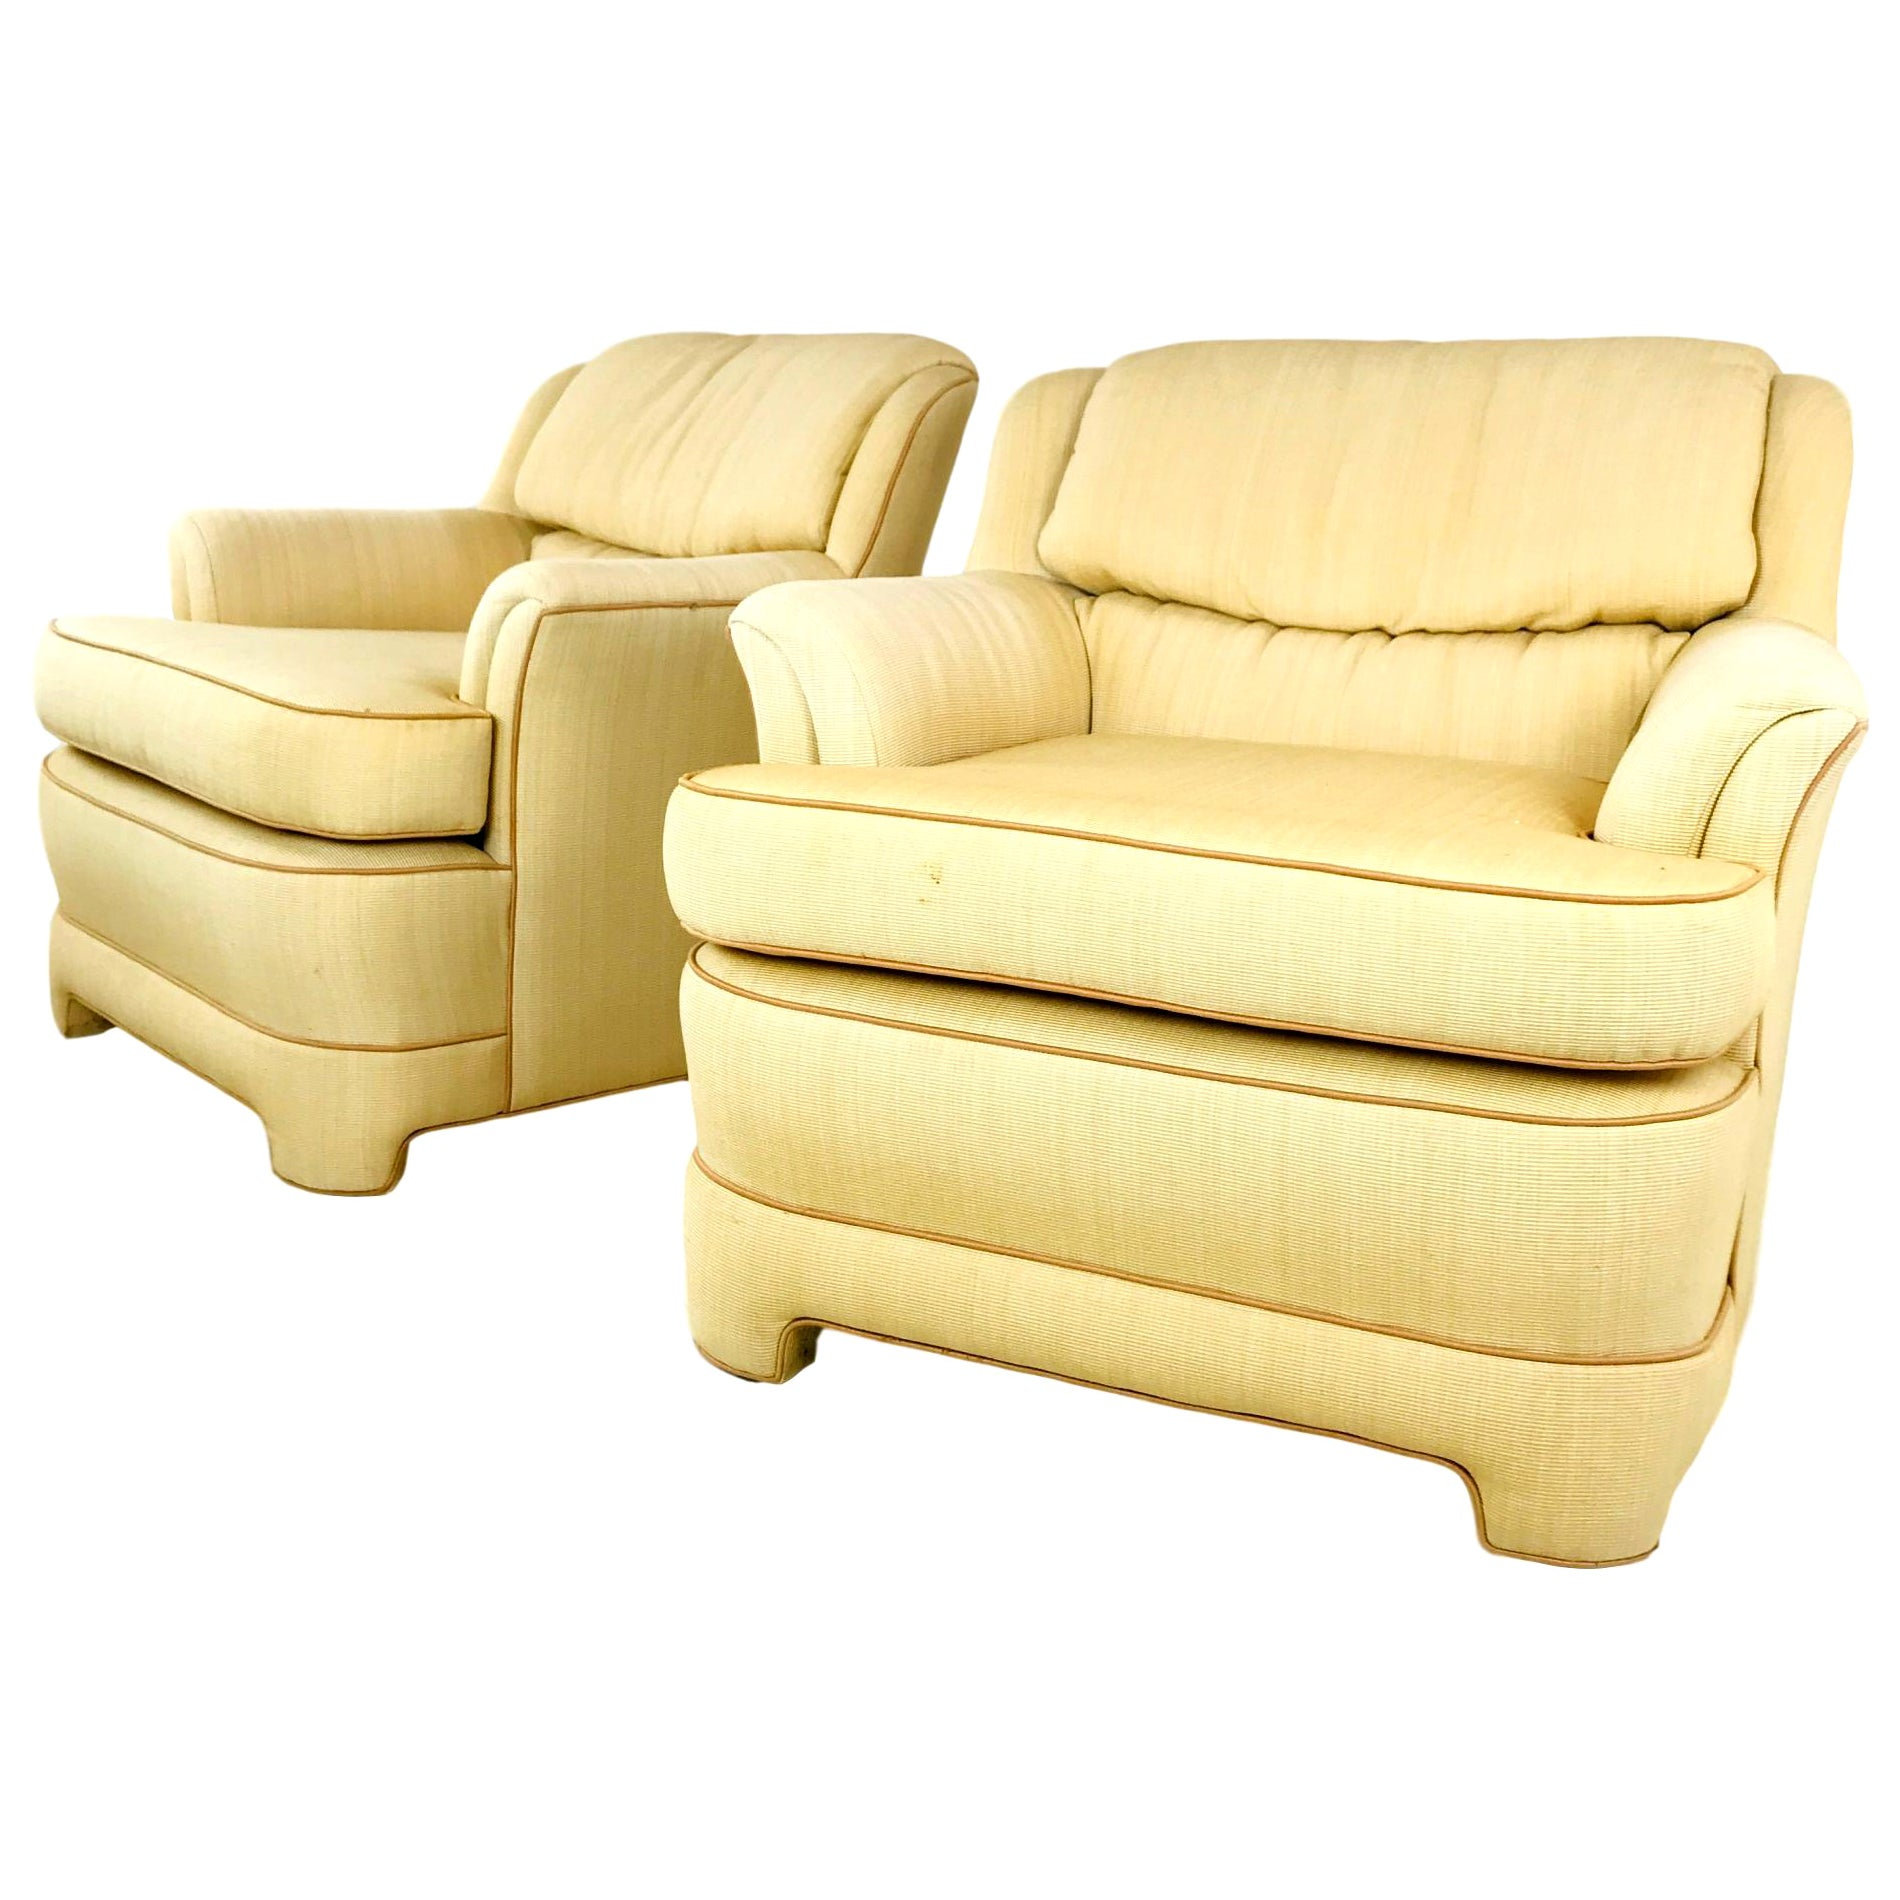 Pair of 1980s Marge Carson Armchairs